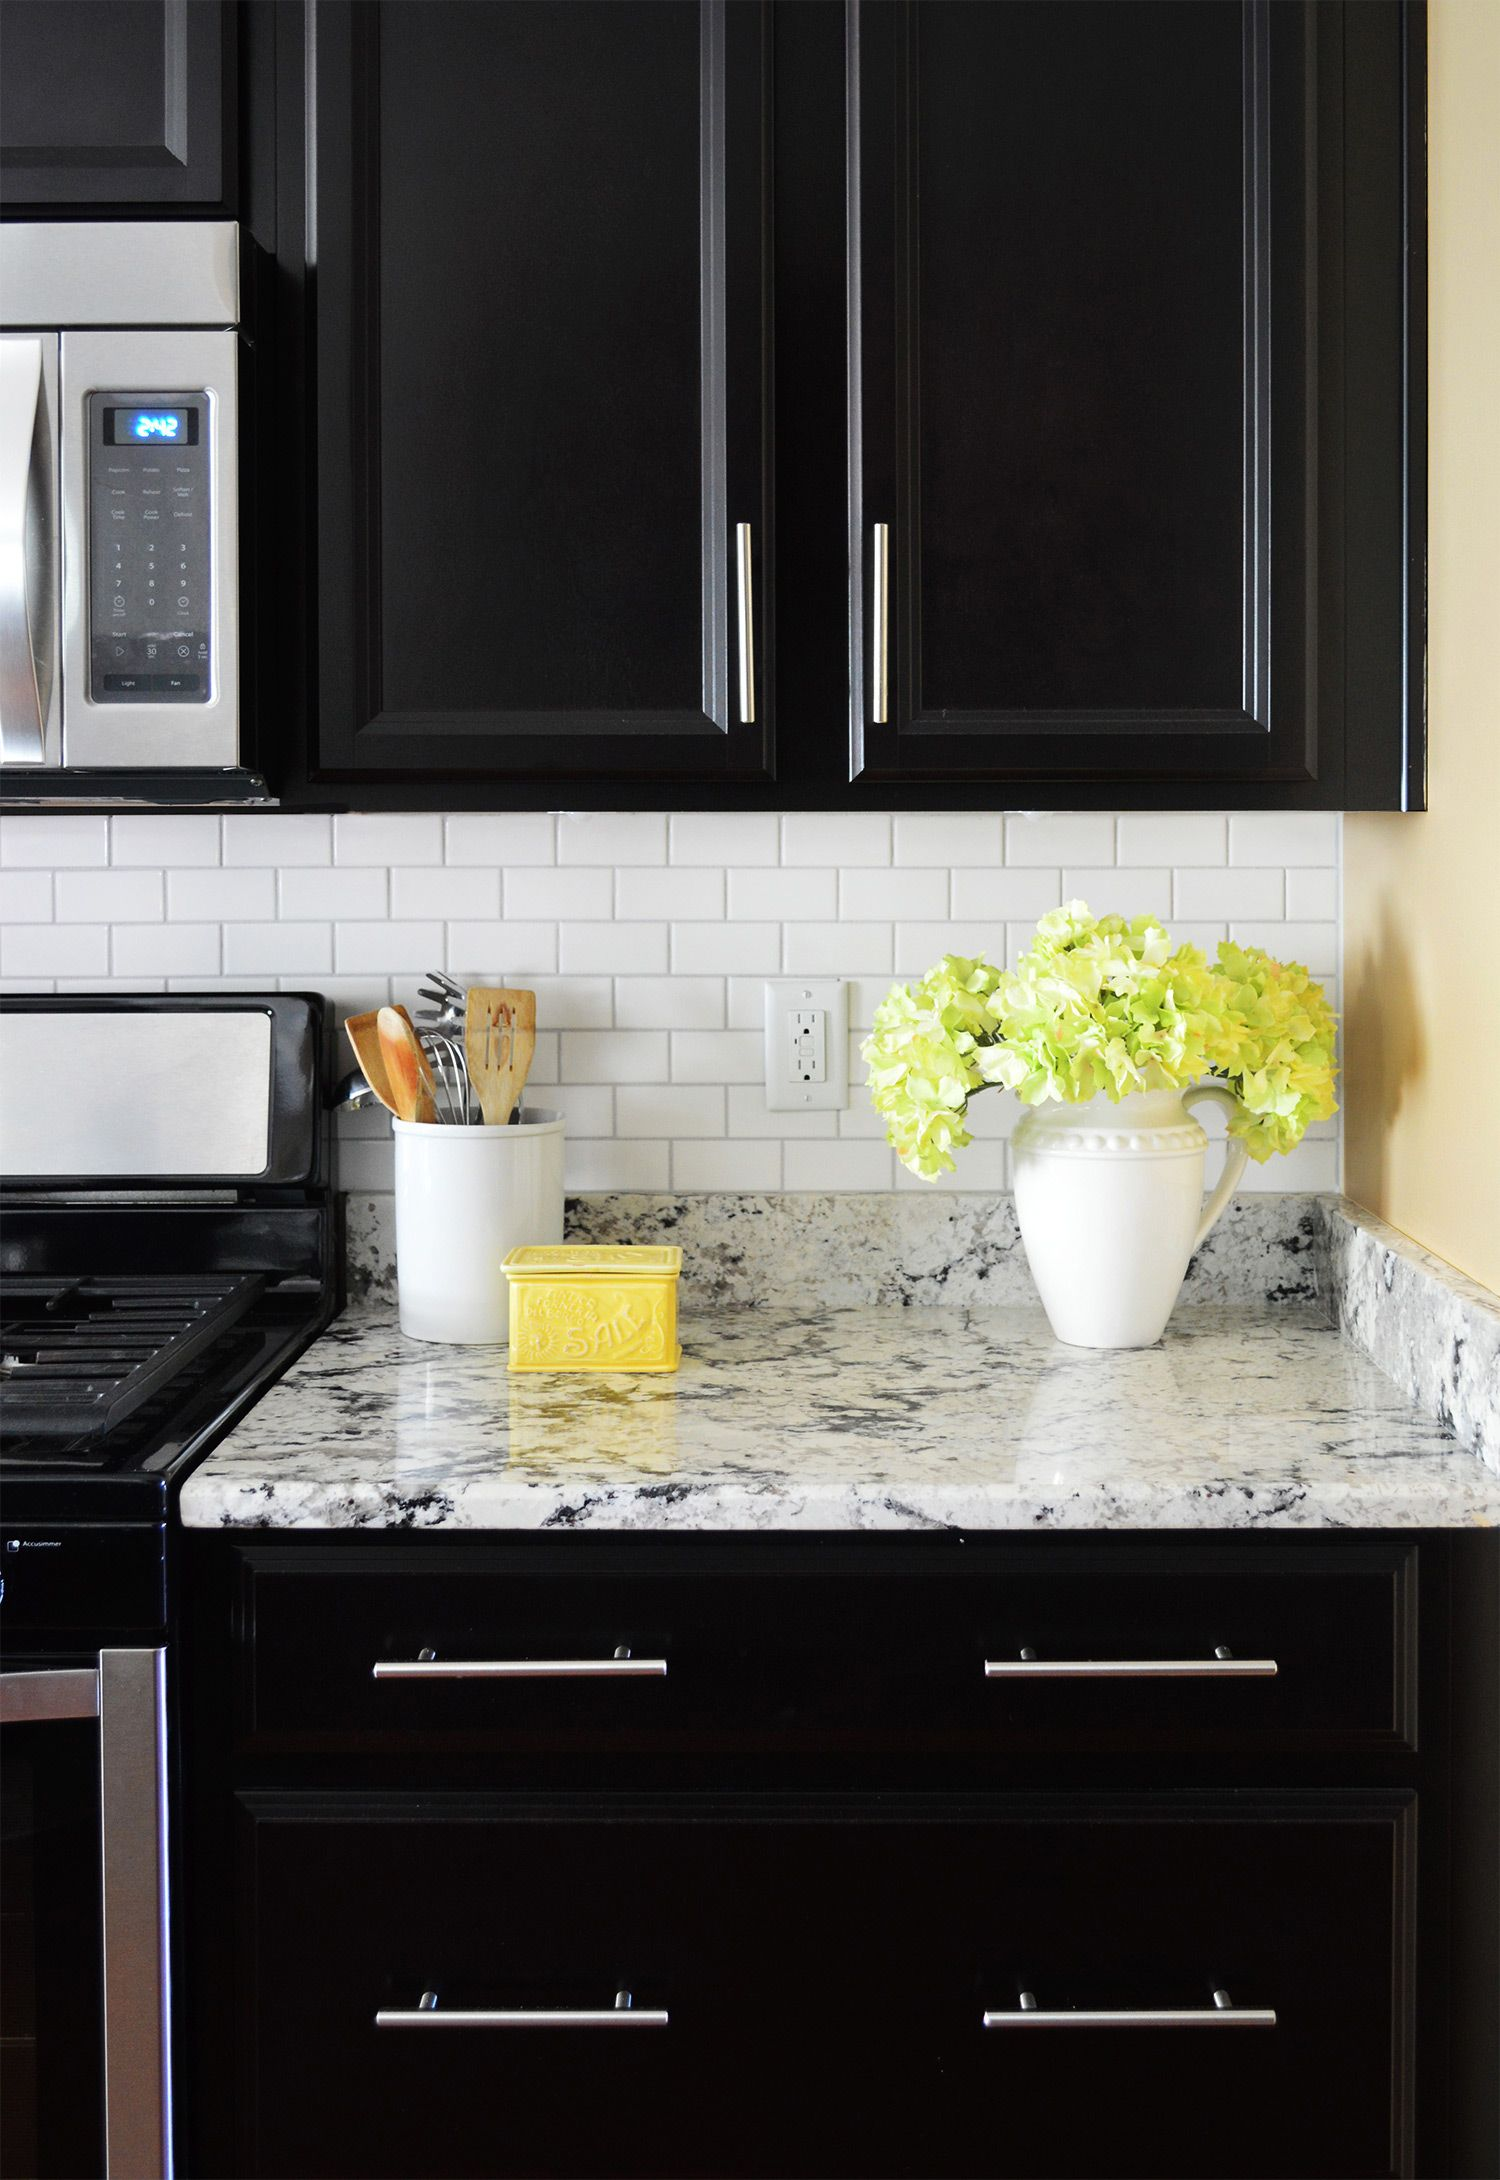 How To Install A Subway Tile Kitchen Backsplash Young House Love Subway Tile Backsplash Kitchen Backsplash With Dark Cabinets Black Kitchen Cabinets